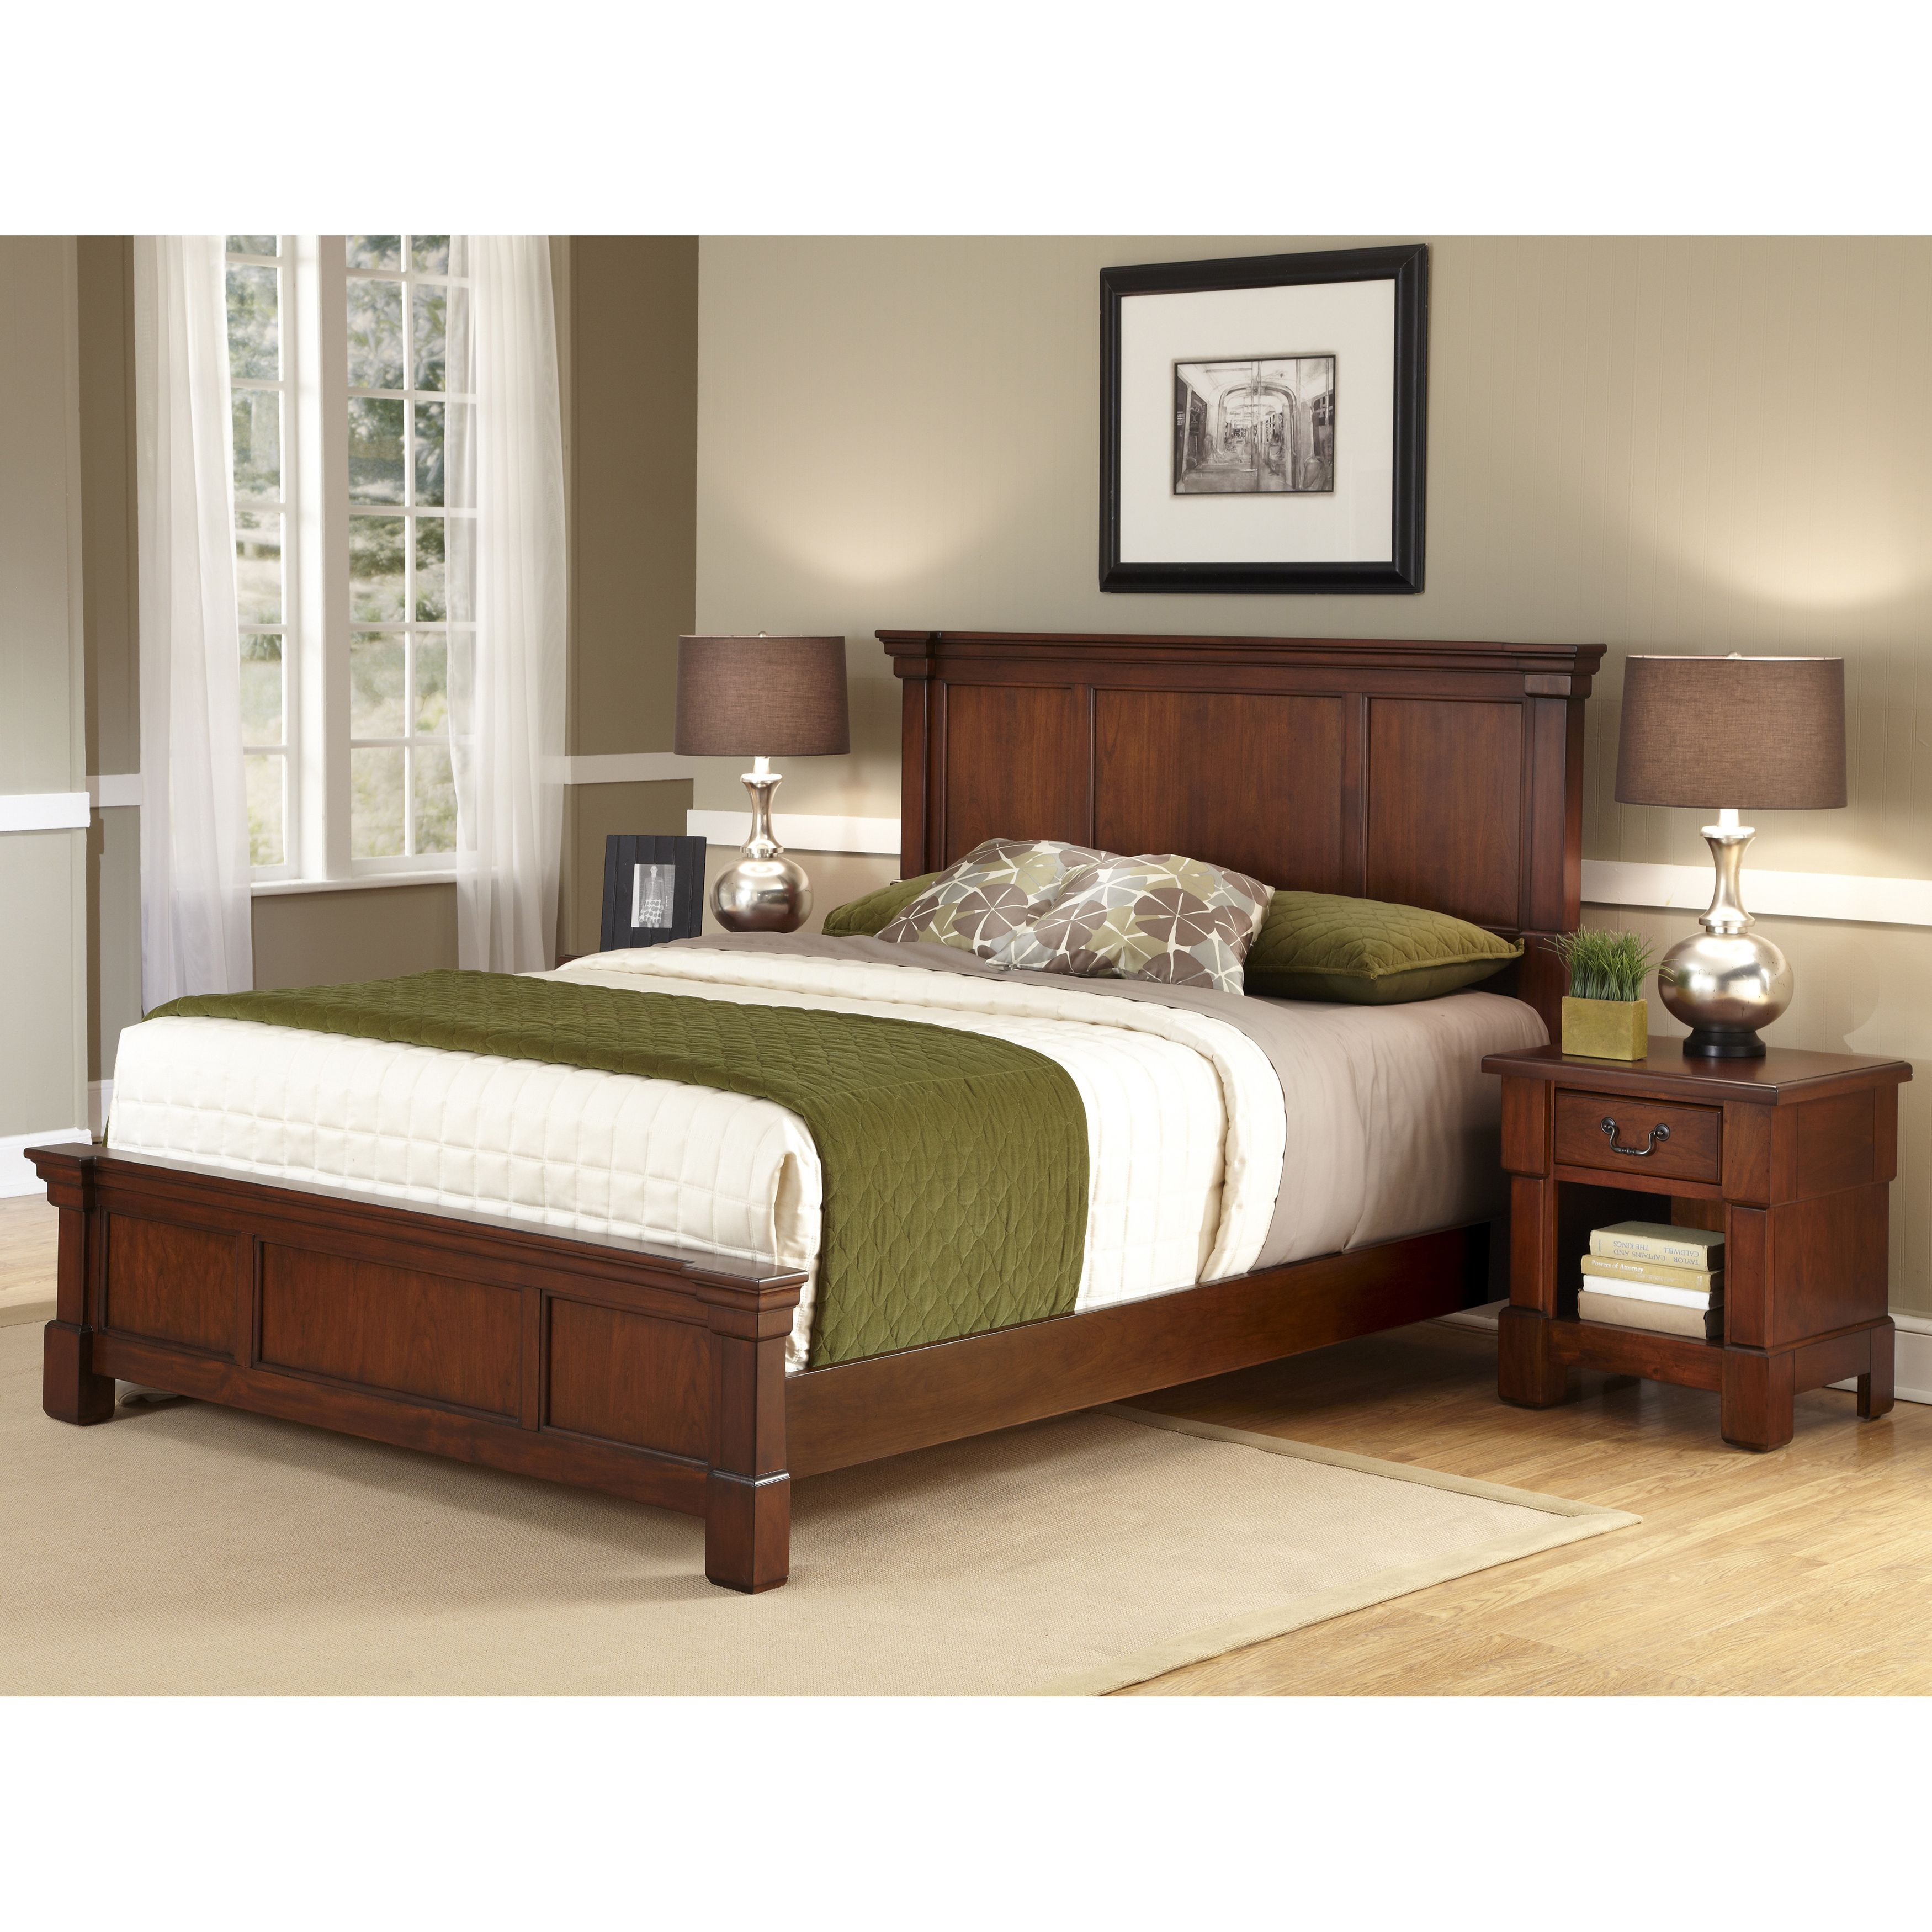 The Aspen Collection Rustic Cherry Queen Size Bed And Nightstand